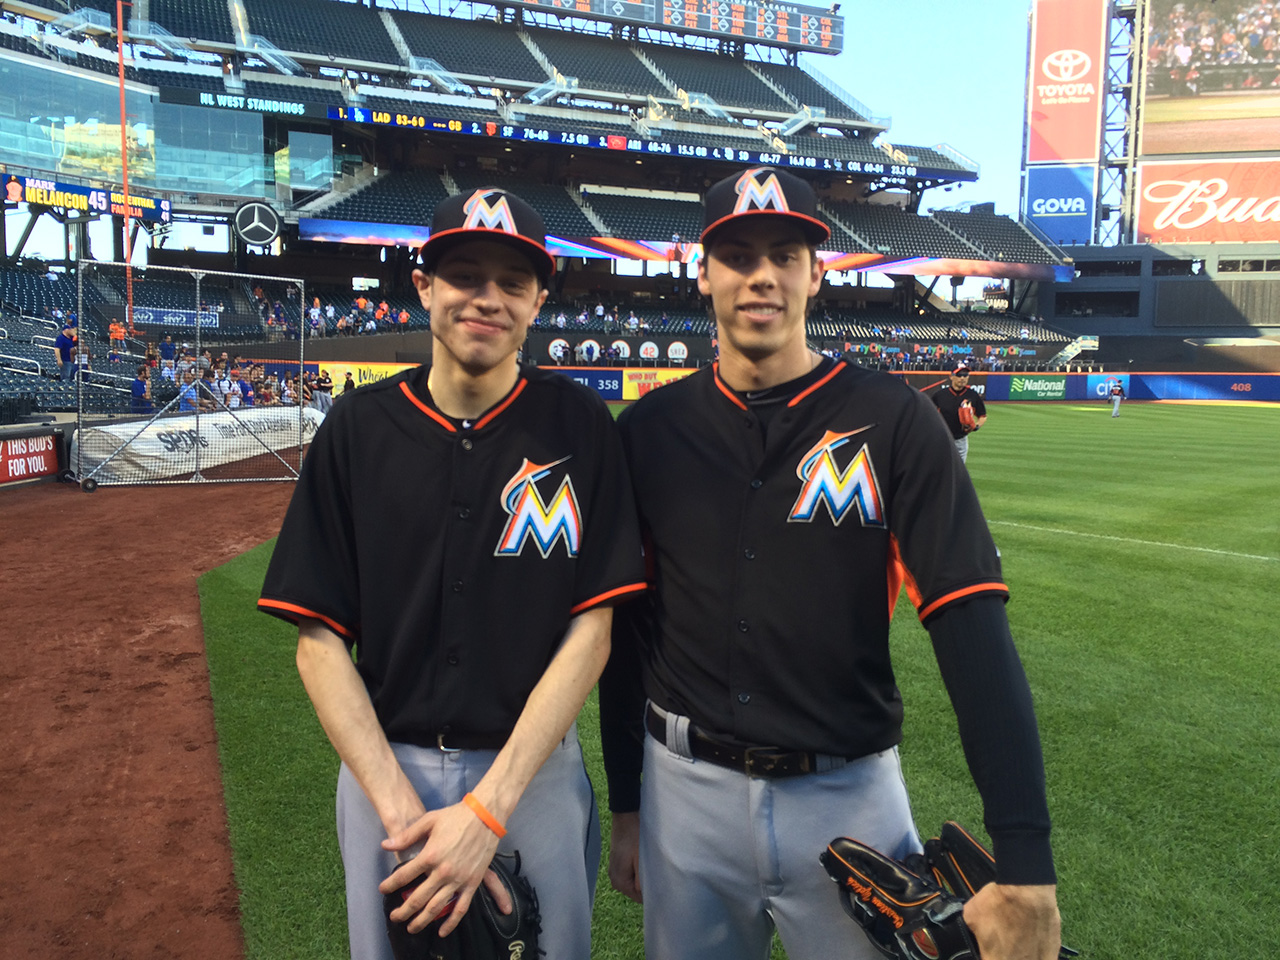 Christian Yelich came face-to-face with his doppelganger ...